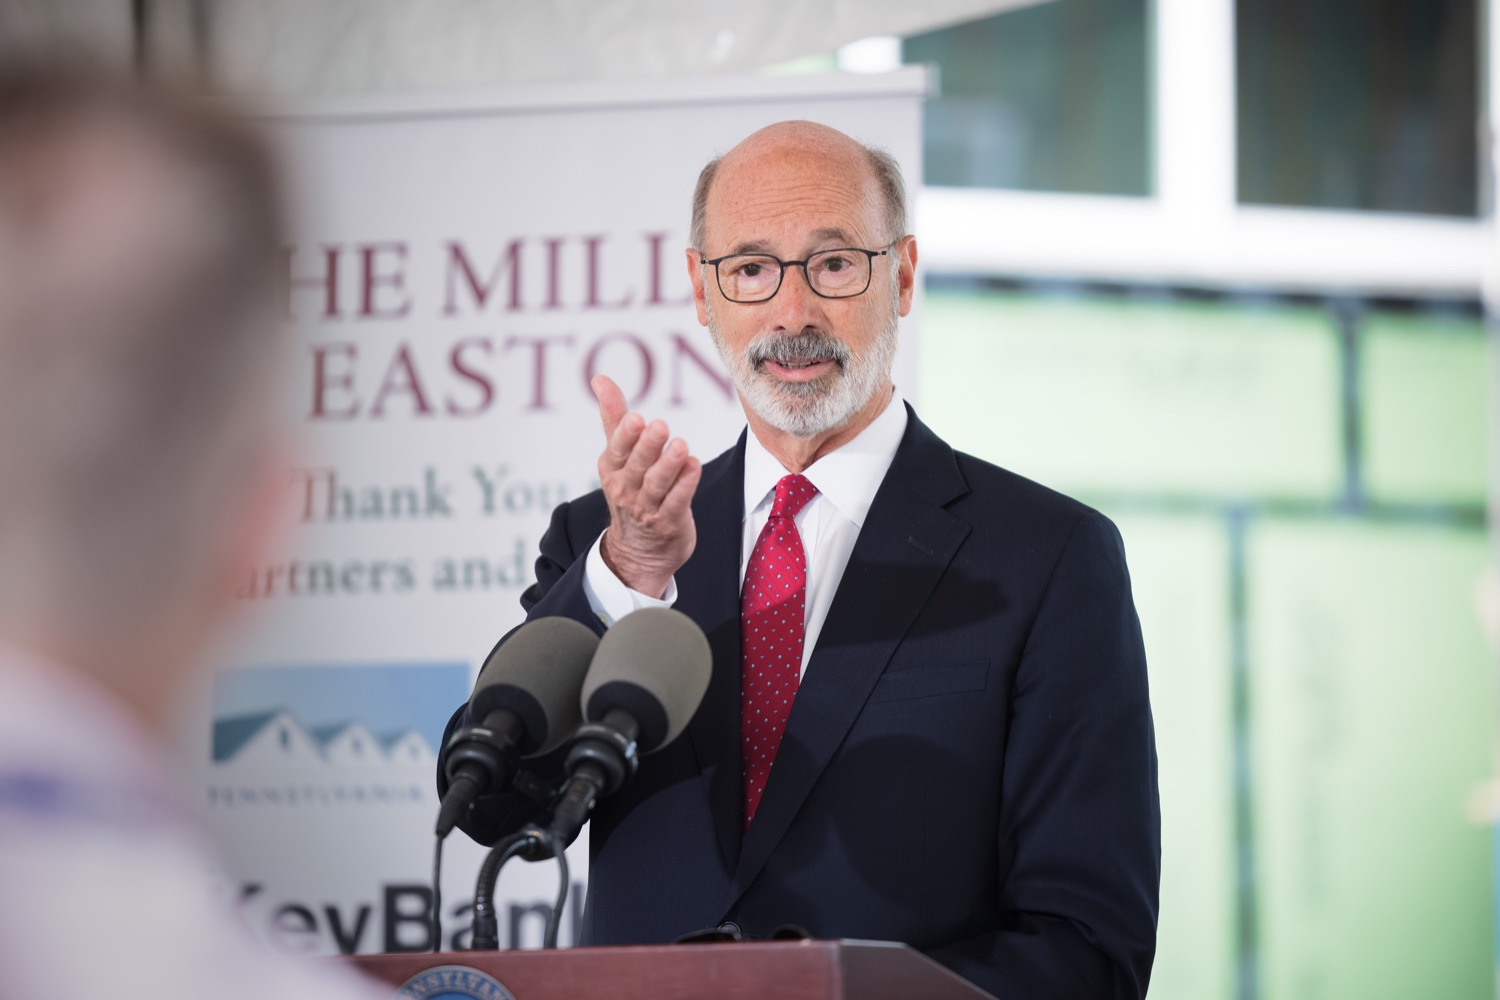 """<a href=""""https://filesource.wostreaming.net/commonwealthofpa/photo/20125_gov_economicDevelopment_dz_010.jpg"""" target=""""_blank"""">⇣Download Photo<br></a>Pennsylvania Governor Tom Wolf speaking with the press.  Governor Tom Wolf today visited the City of Easton to highlight millions of dollars in state investments in several economic development projects that are revitalizing formerly vacant and blighted properties.  Easton, PA   October 8, 2021."""